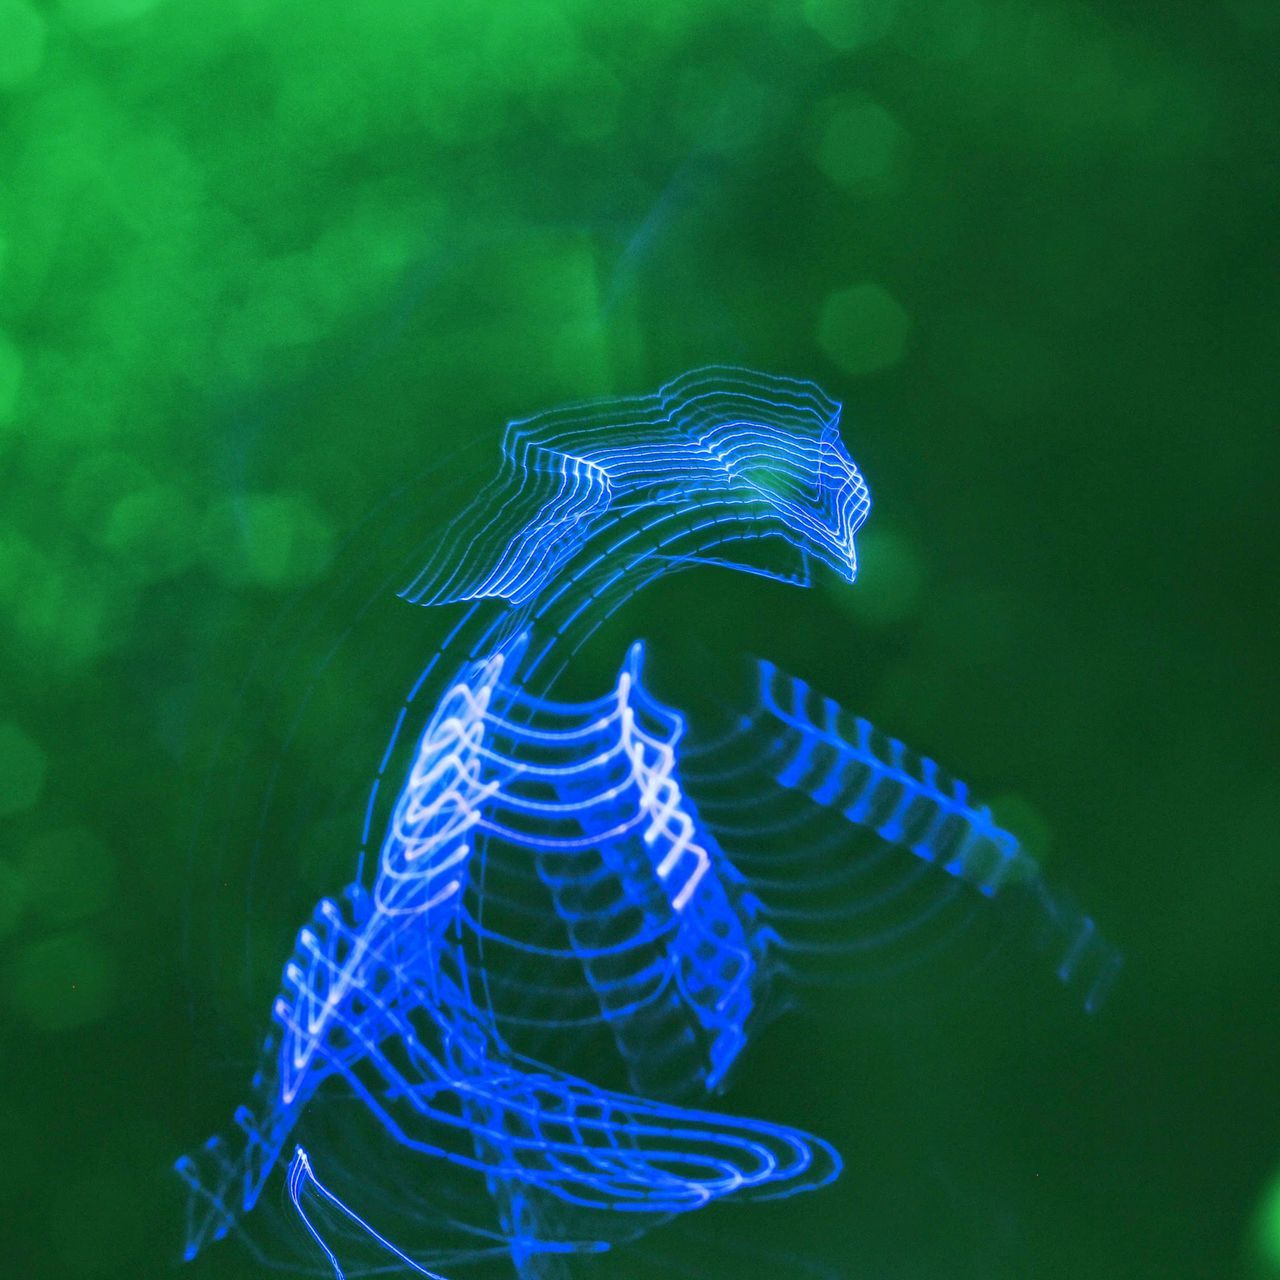 blue, no people, sea life, close-up, water, green color, underwater, swimming, nature, beauty in nature, animal themes, outdoors, undersea, day